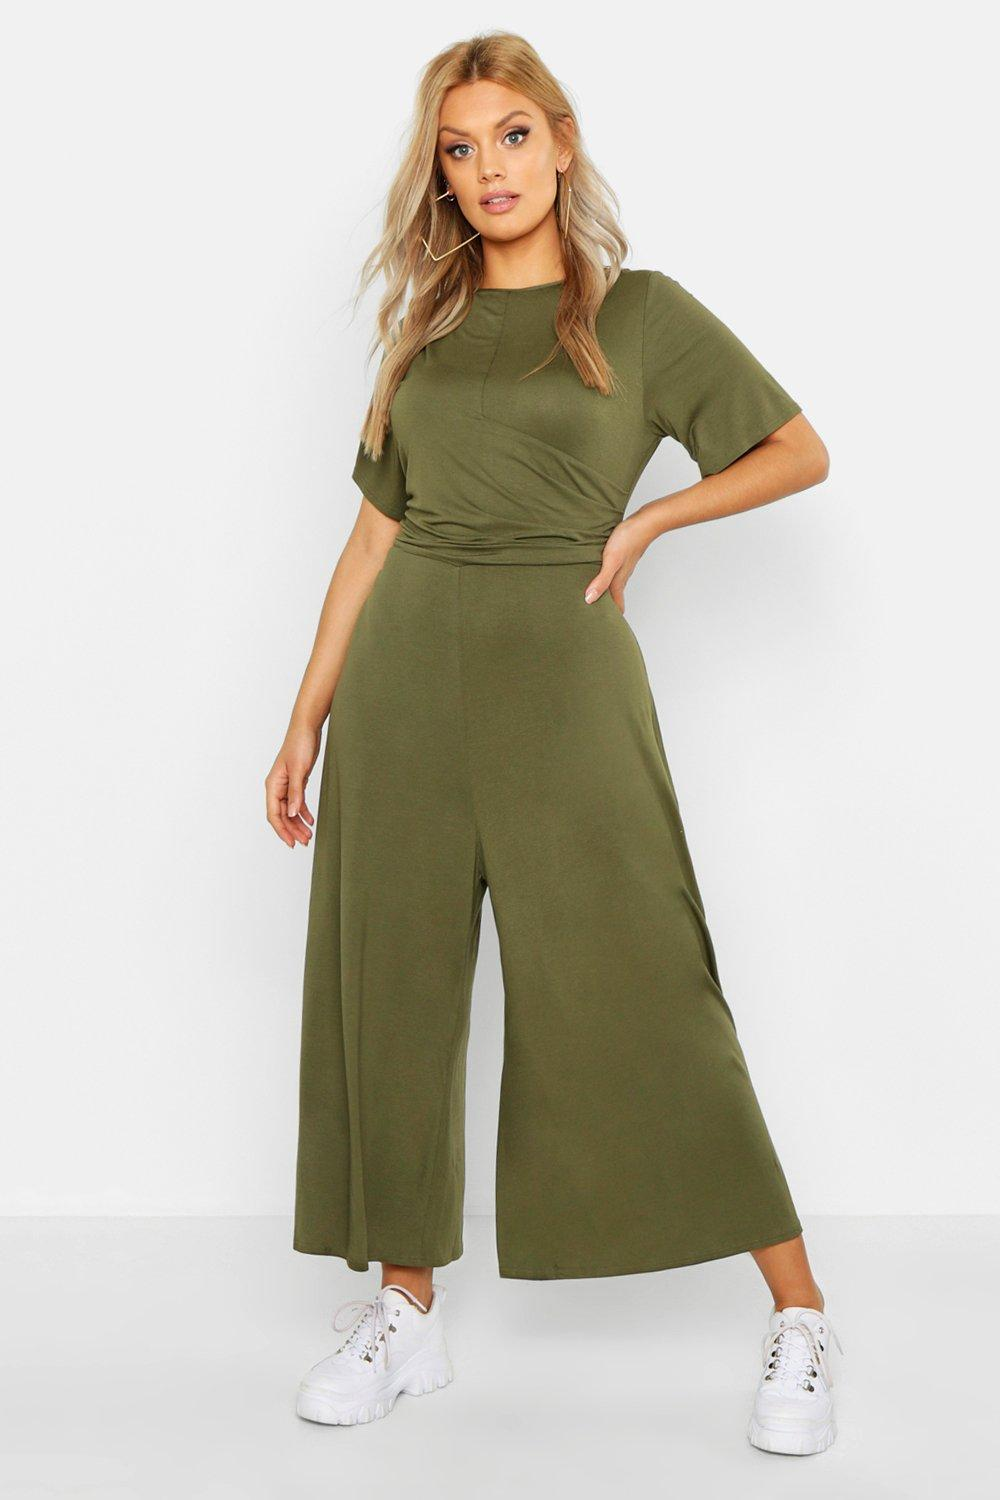 00372158fa3d Lyst - Boohoo Plus Twist Detail Cap Sleeve Culotte Jumpsuit in Green